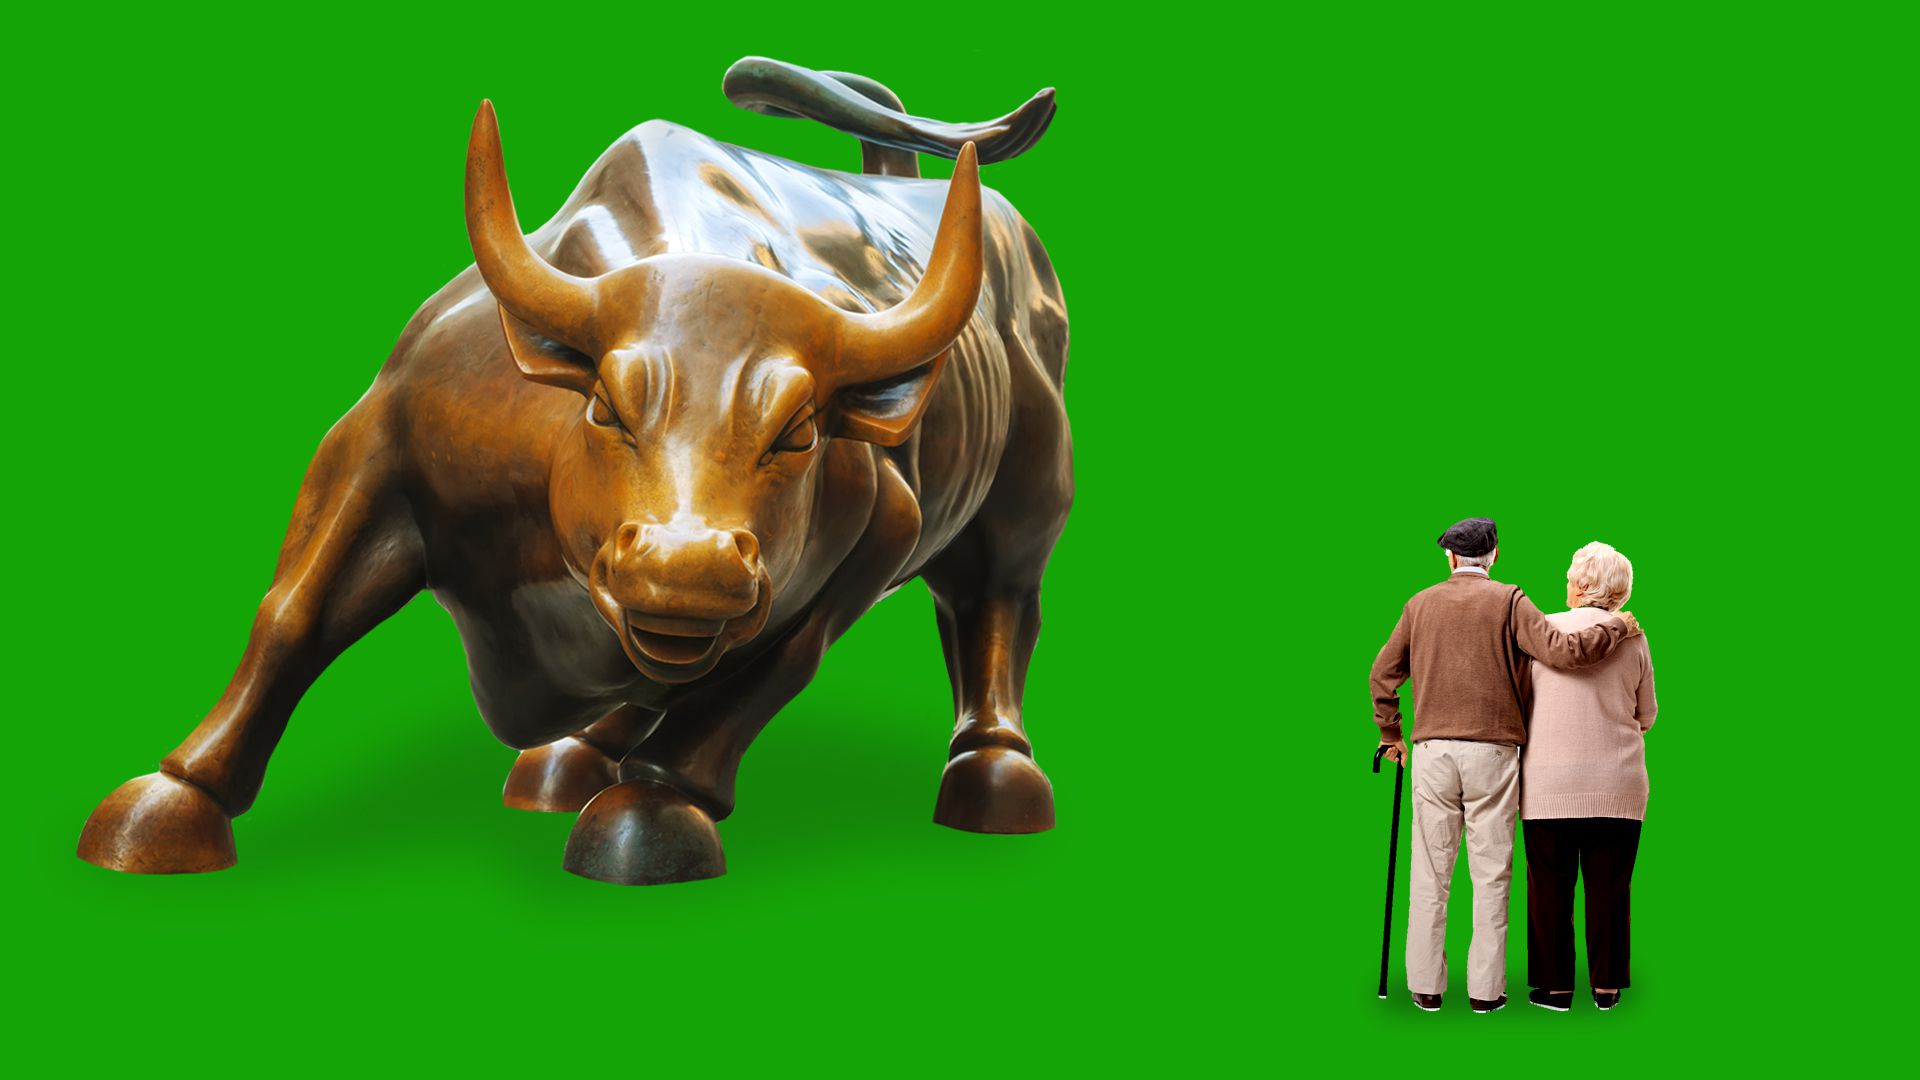 The Wall Street bull staring down mom and pop